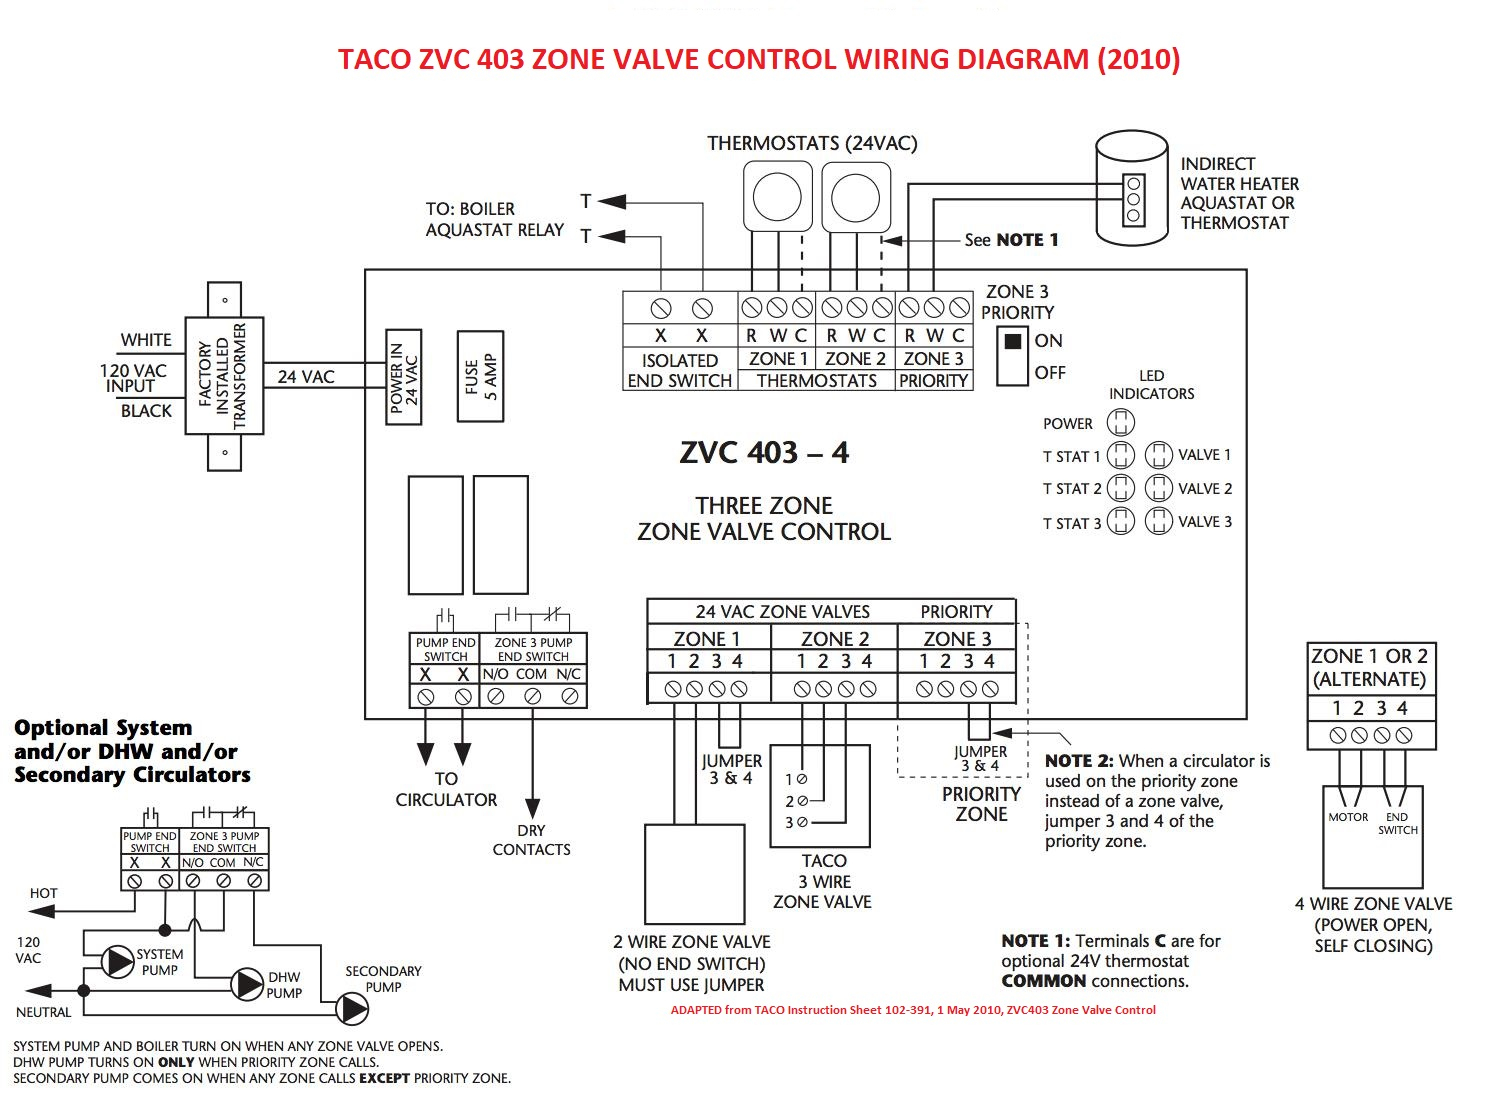 Honeywell Zone Valve Wiring Schematic | Wiring Diagram - Honeywell Zone Valve Wiring Diagram